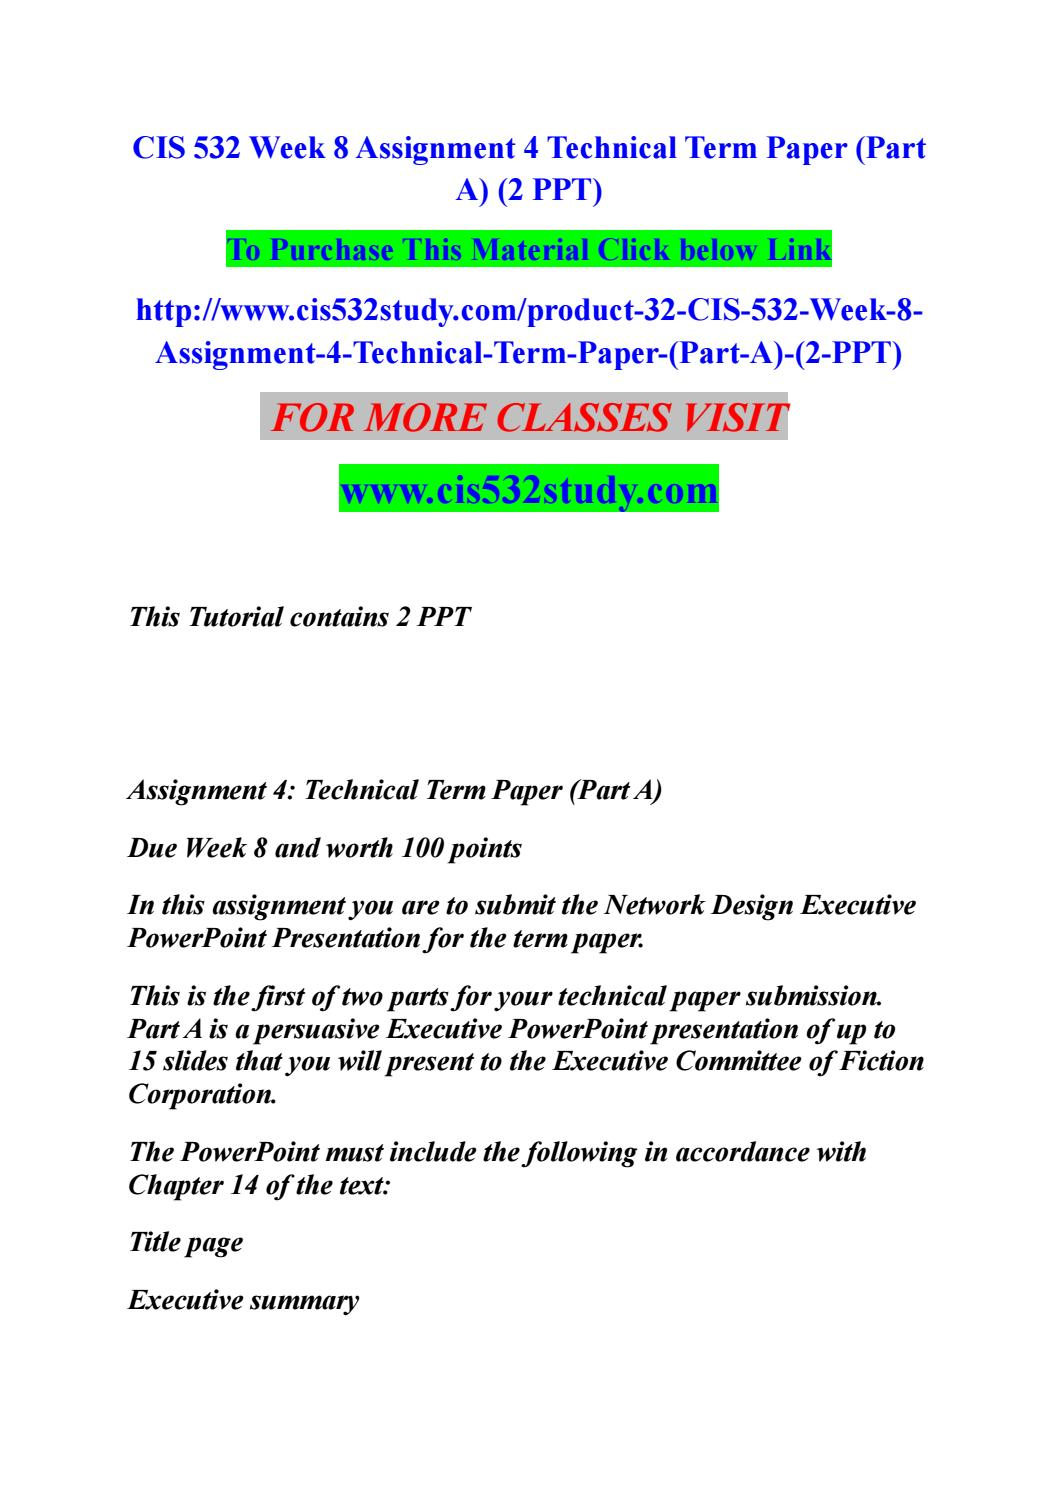 Cis 532 Week 8 Assignment 4 Technical Term Paper Part A 2